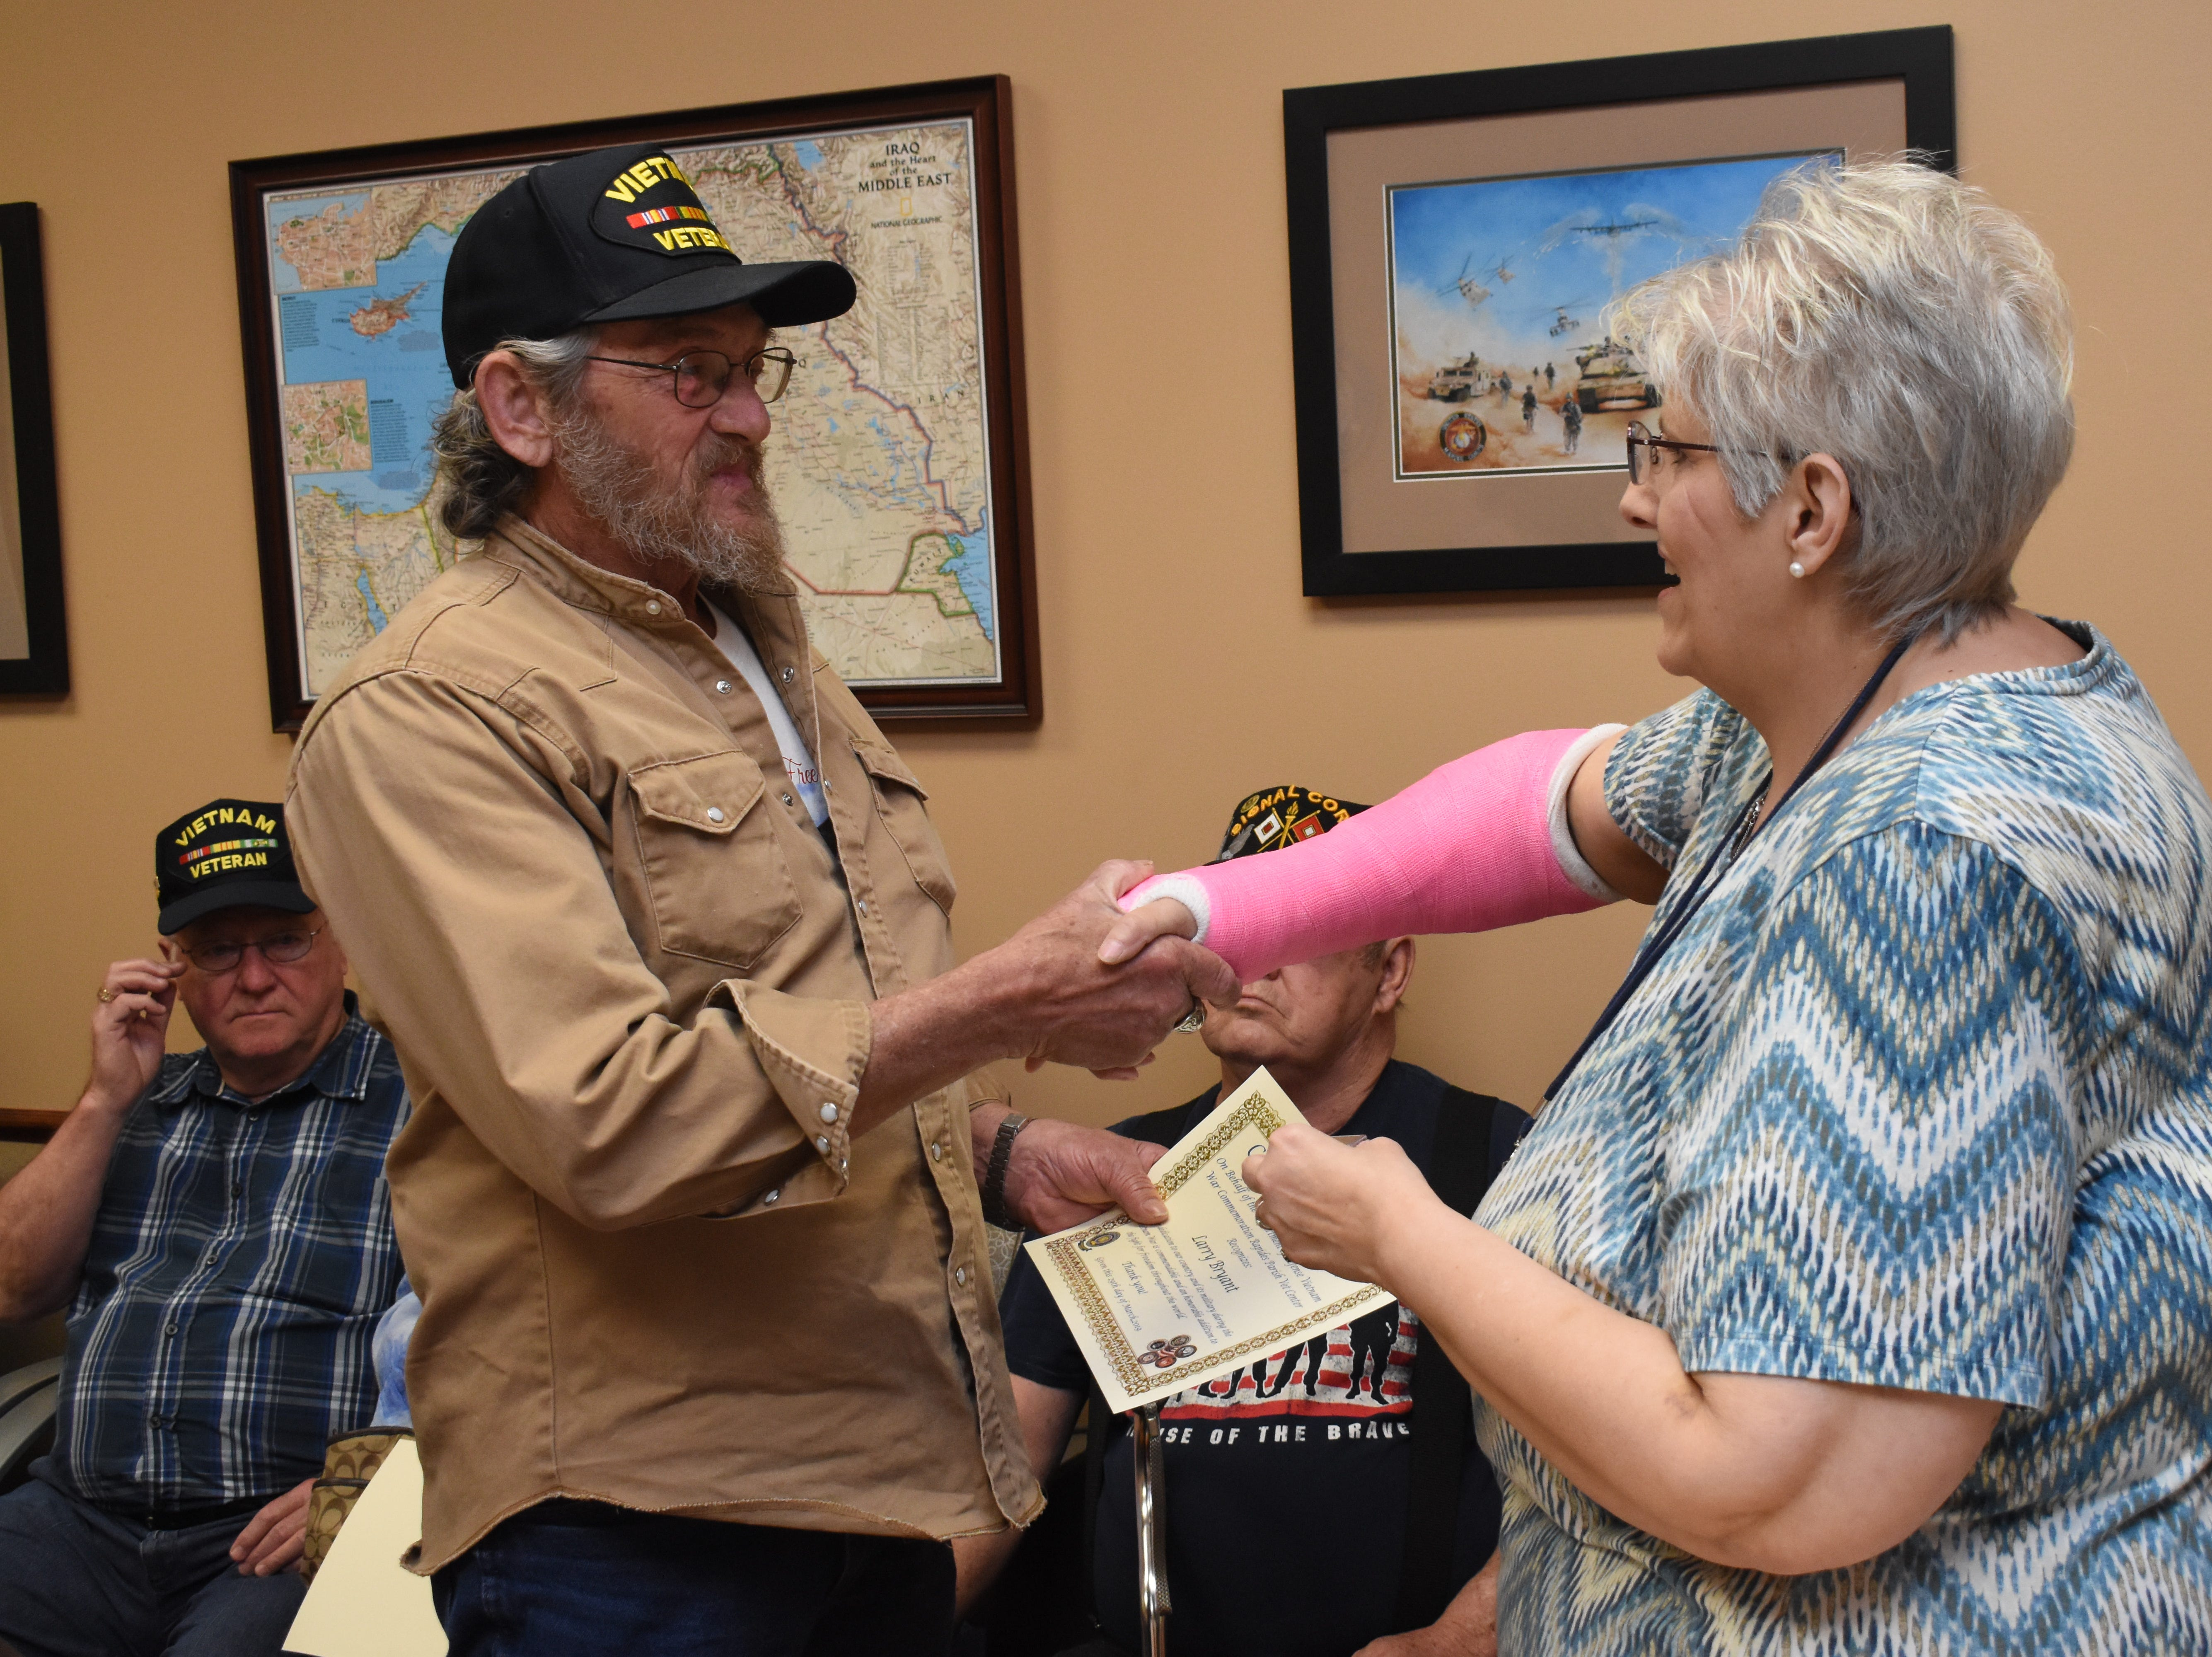 """Elizabeth Cheryl Nolen (right) executive director of the Rapides Parish Vet Center, hands Larry Bryant, a Vietnam War veteran, a certificate and pin in honor of his service during the Vietnam War. The Rapides Parish Vet Center, located at 5803 Coliseum Blvd., which serves combat-era military veterans, held a pin ceremony Friday, March 29, 2019 for Vietnam War veterans in recognition of Vietnam Veterans Day. Over the course of the day over 50 pins and certificates were handed out. Vietnam Veterans Day honors those who served and their families. The Vietnam War Veterans Recognition Act  was signed into law in 2017. """"Welcome Home Vietnam Veterans Day"""" is celebrated in most states on March 29 or March 30. On March 29, 1973 the last troops withdrew from Vietnam and American prisoners of war were returned. This is also the date President Richard Nixon designated for the first Vietnam Veterans Day in 1974. For more information about the Rapides Parish Vet Center and their services, call (318) 466-4327."""